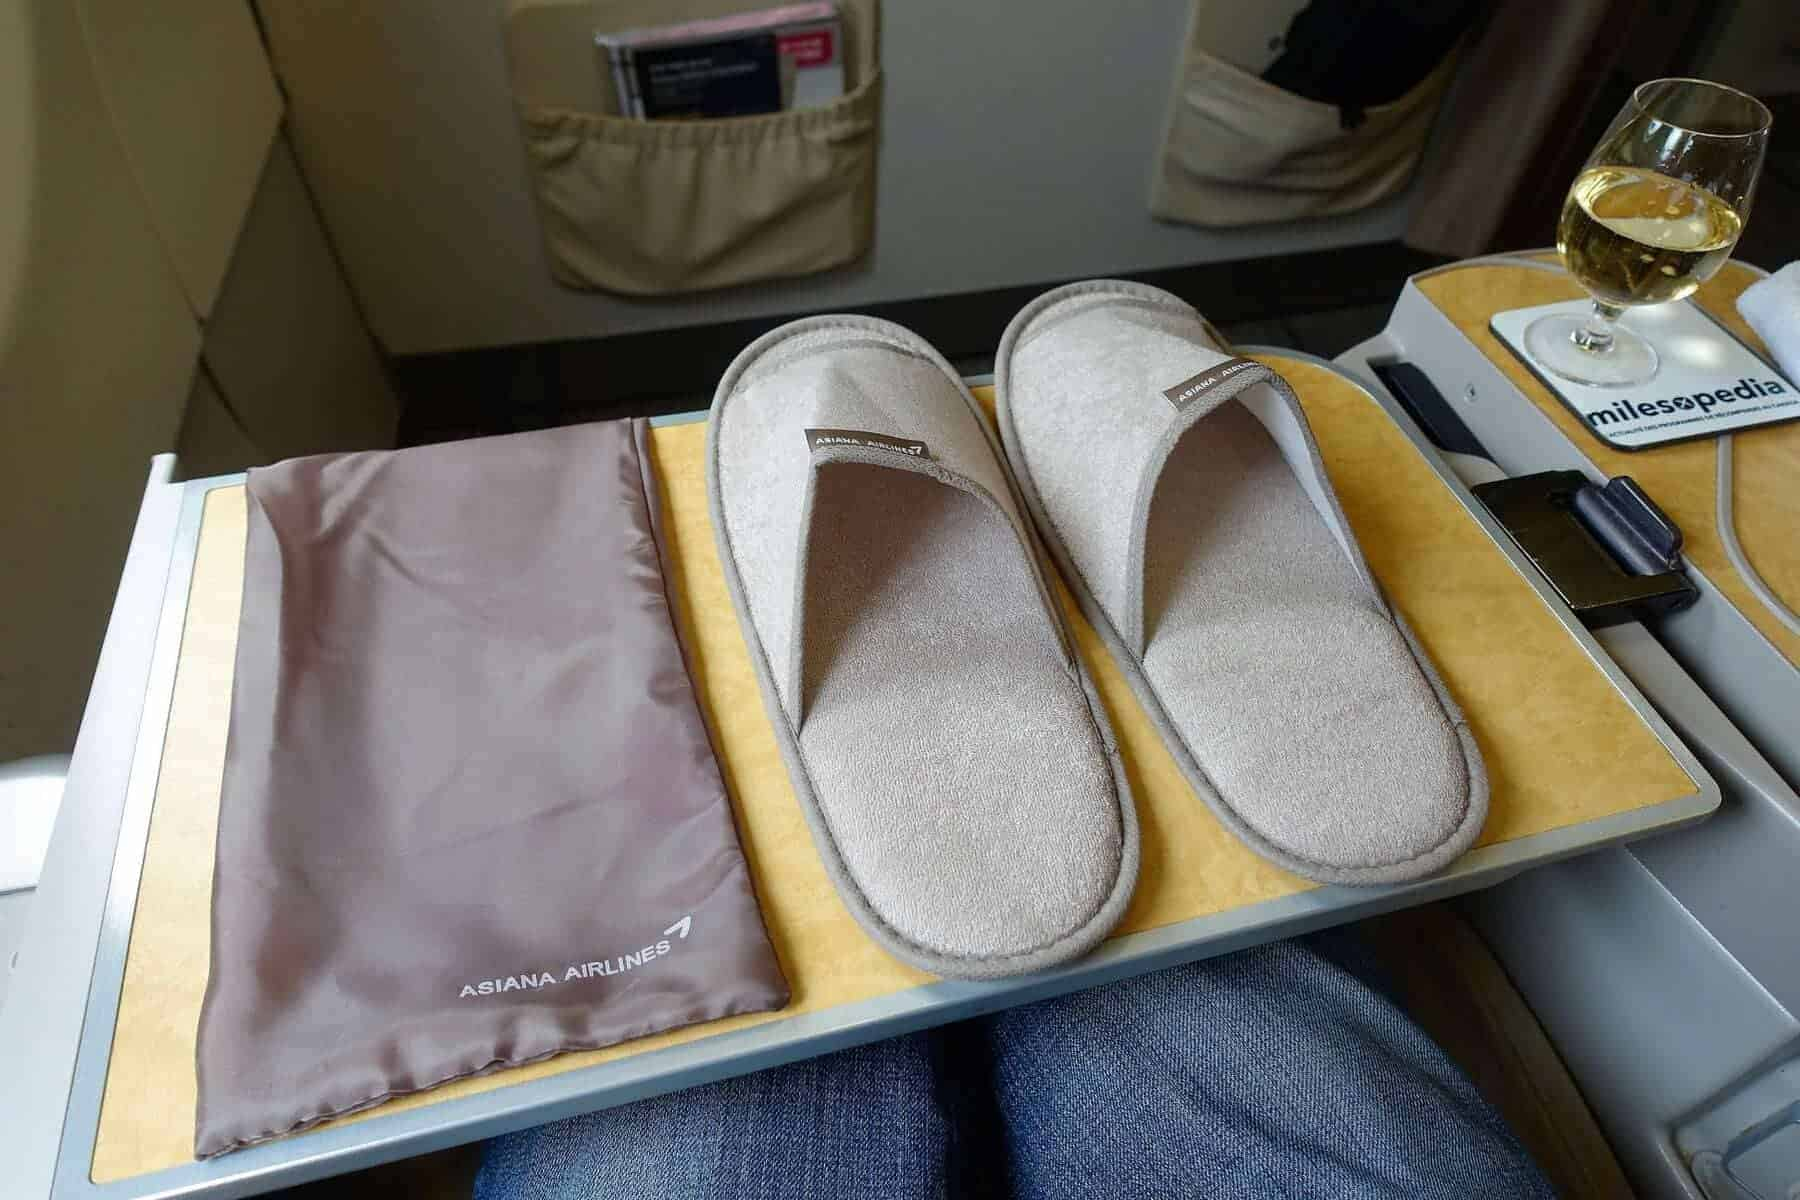 asiana airlines a330 business class sgn icn 32